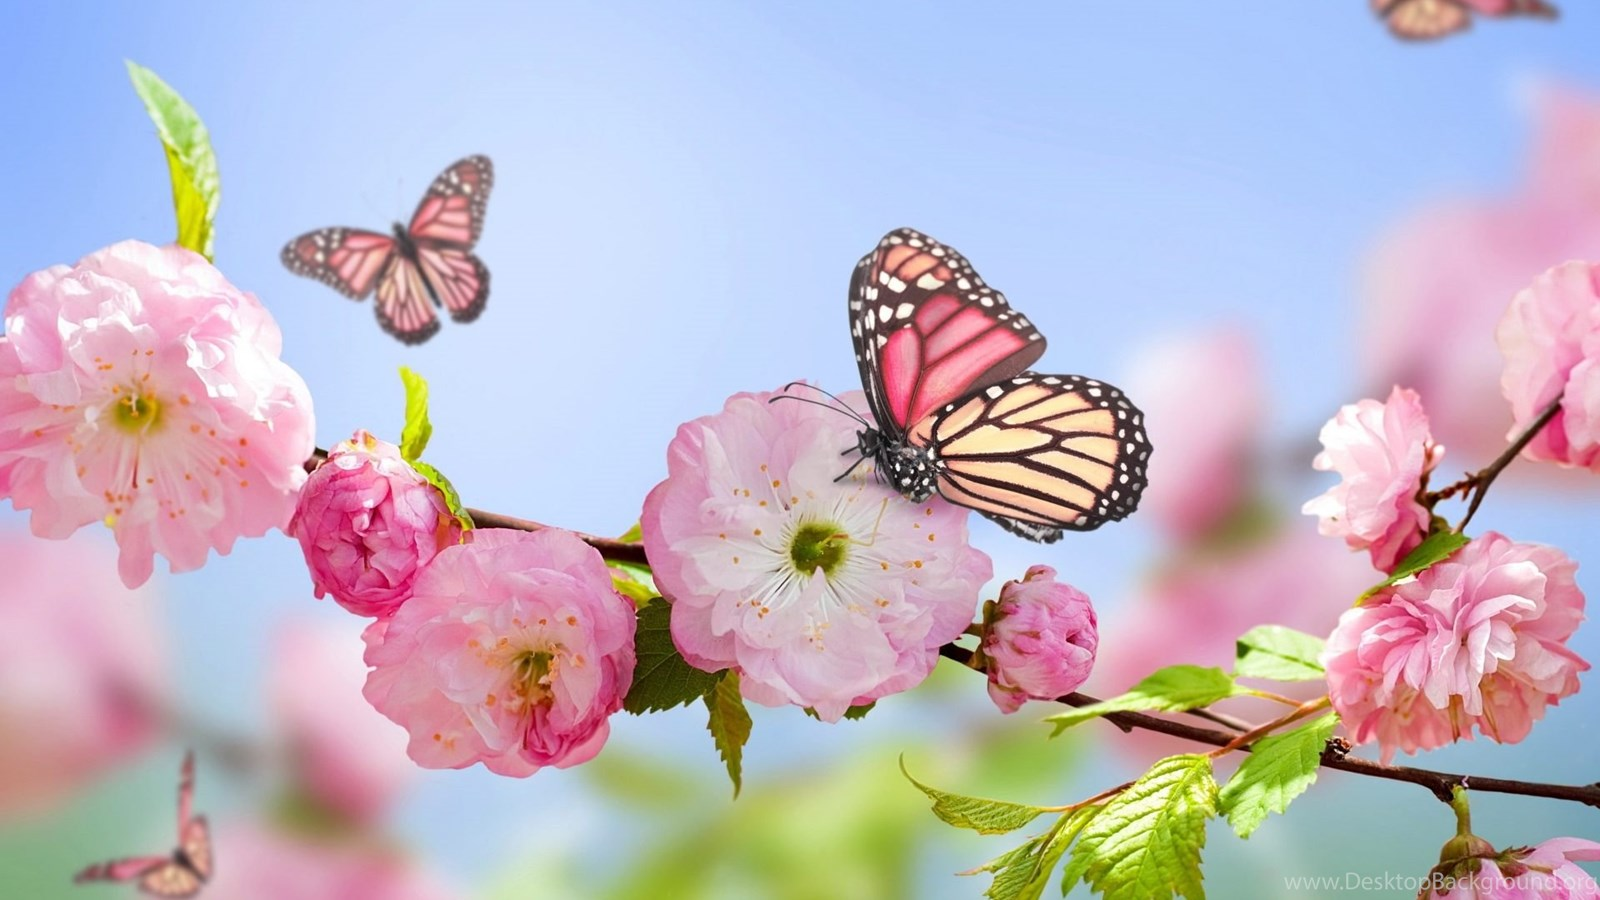 Spring Flowers And Butterflies Wallpapers Popular Flowers Desktop